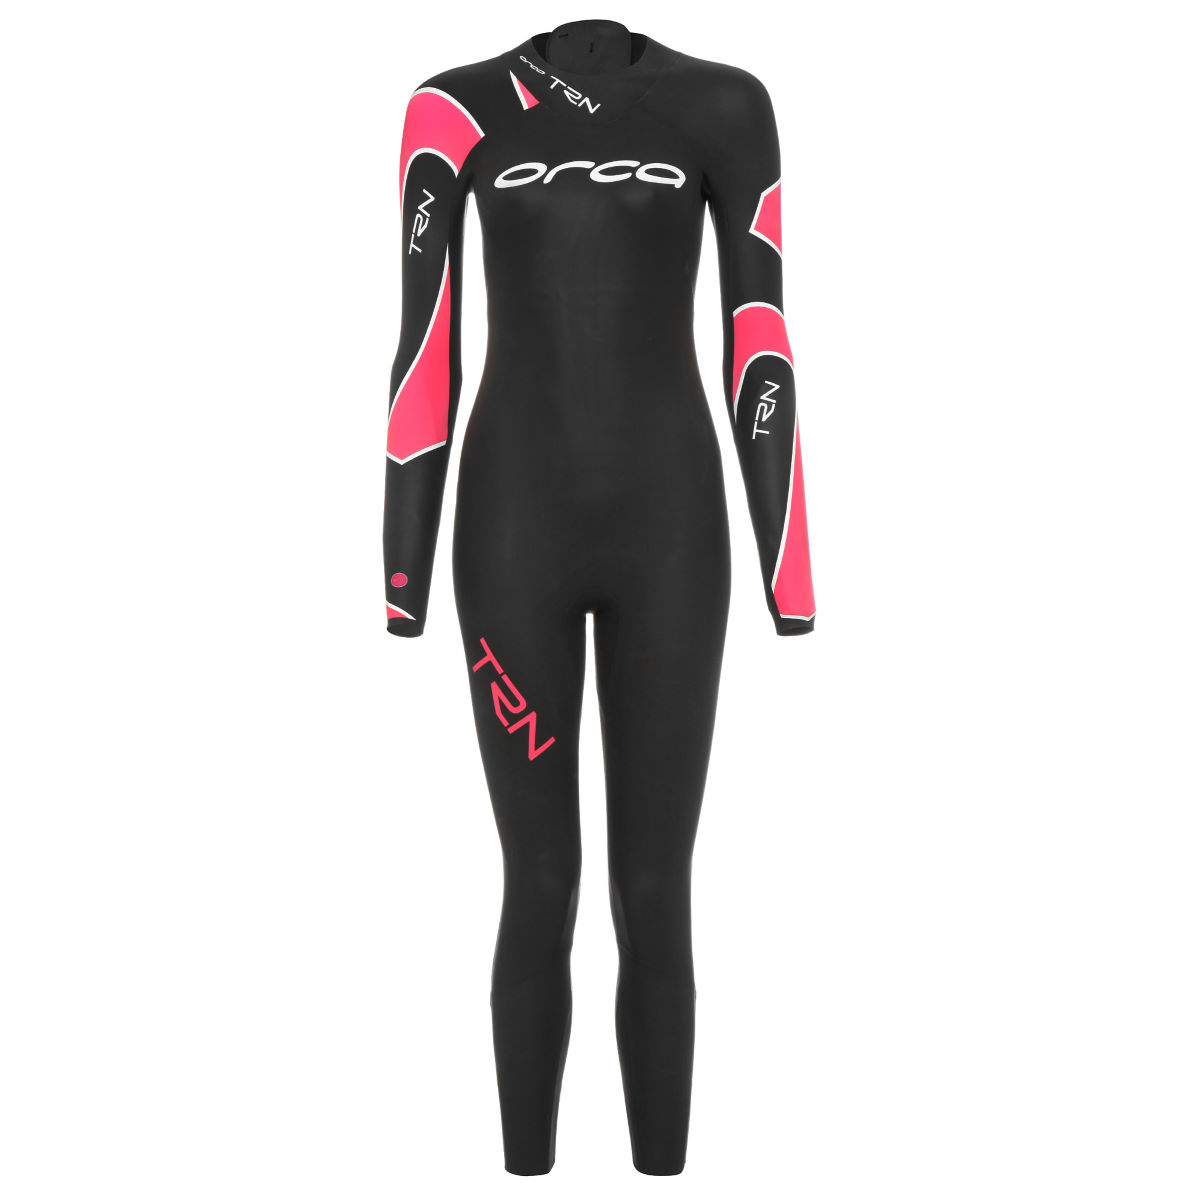 Orca women s trn wetsuit wiggle exclusive wetsuits black coral gvnq4601 1